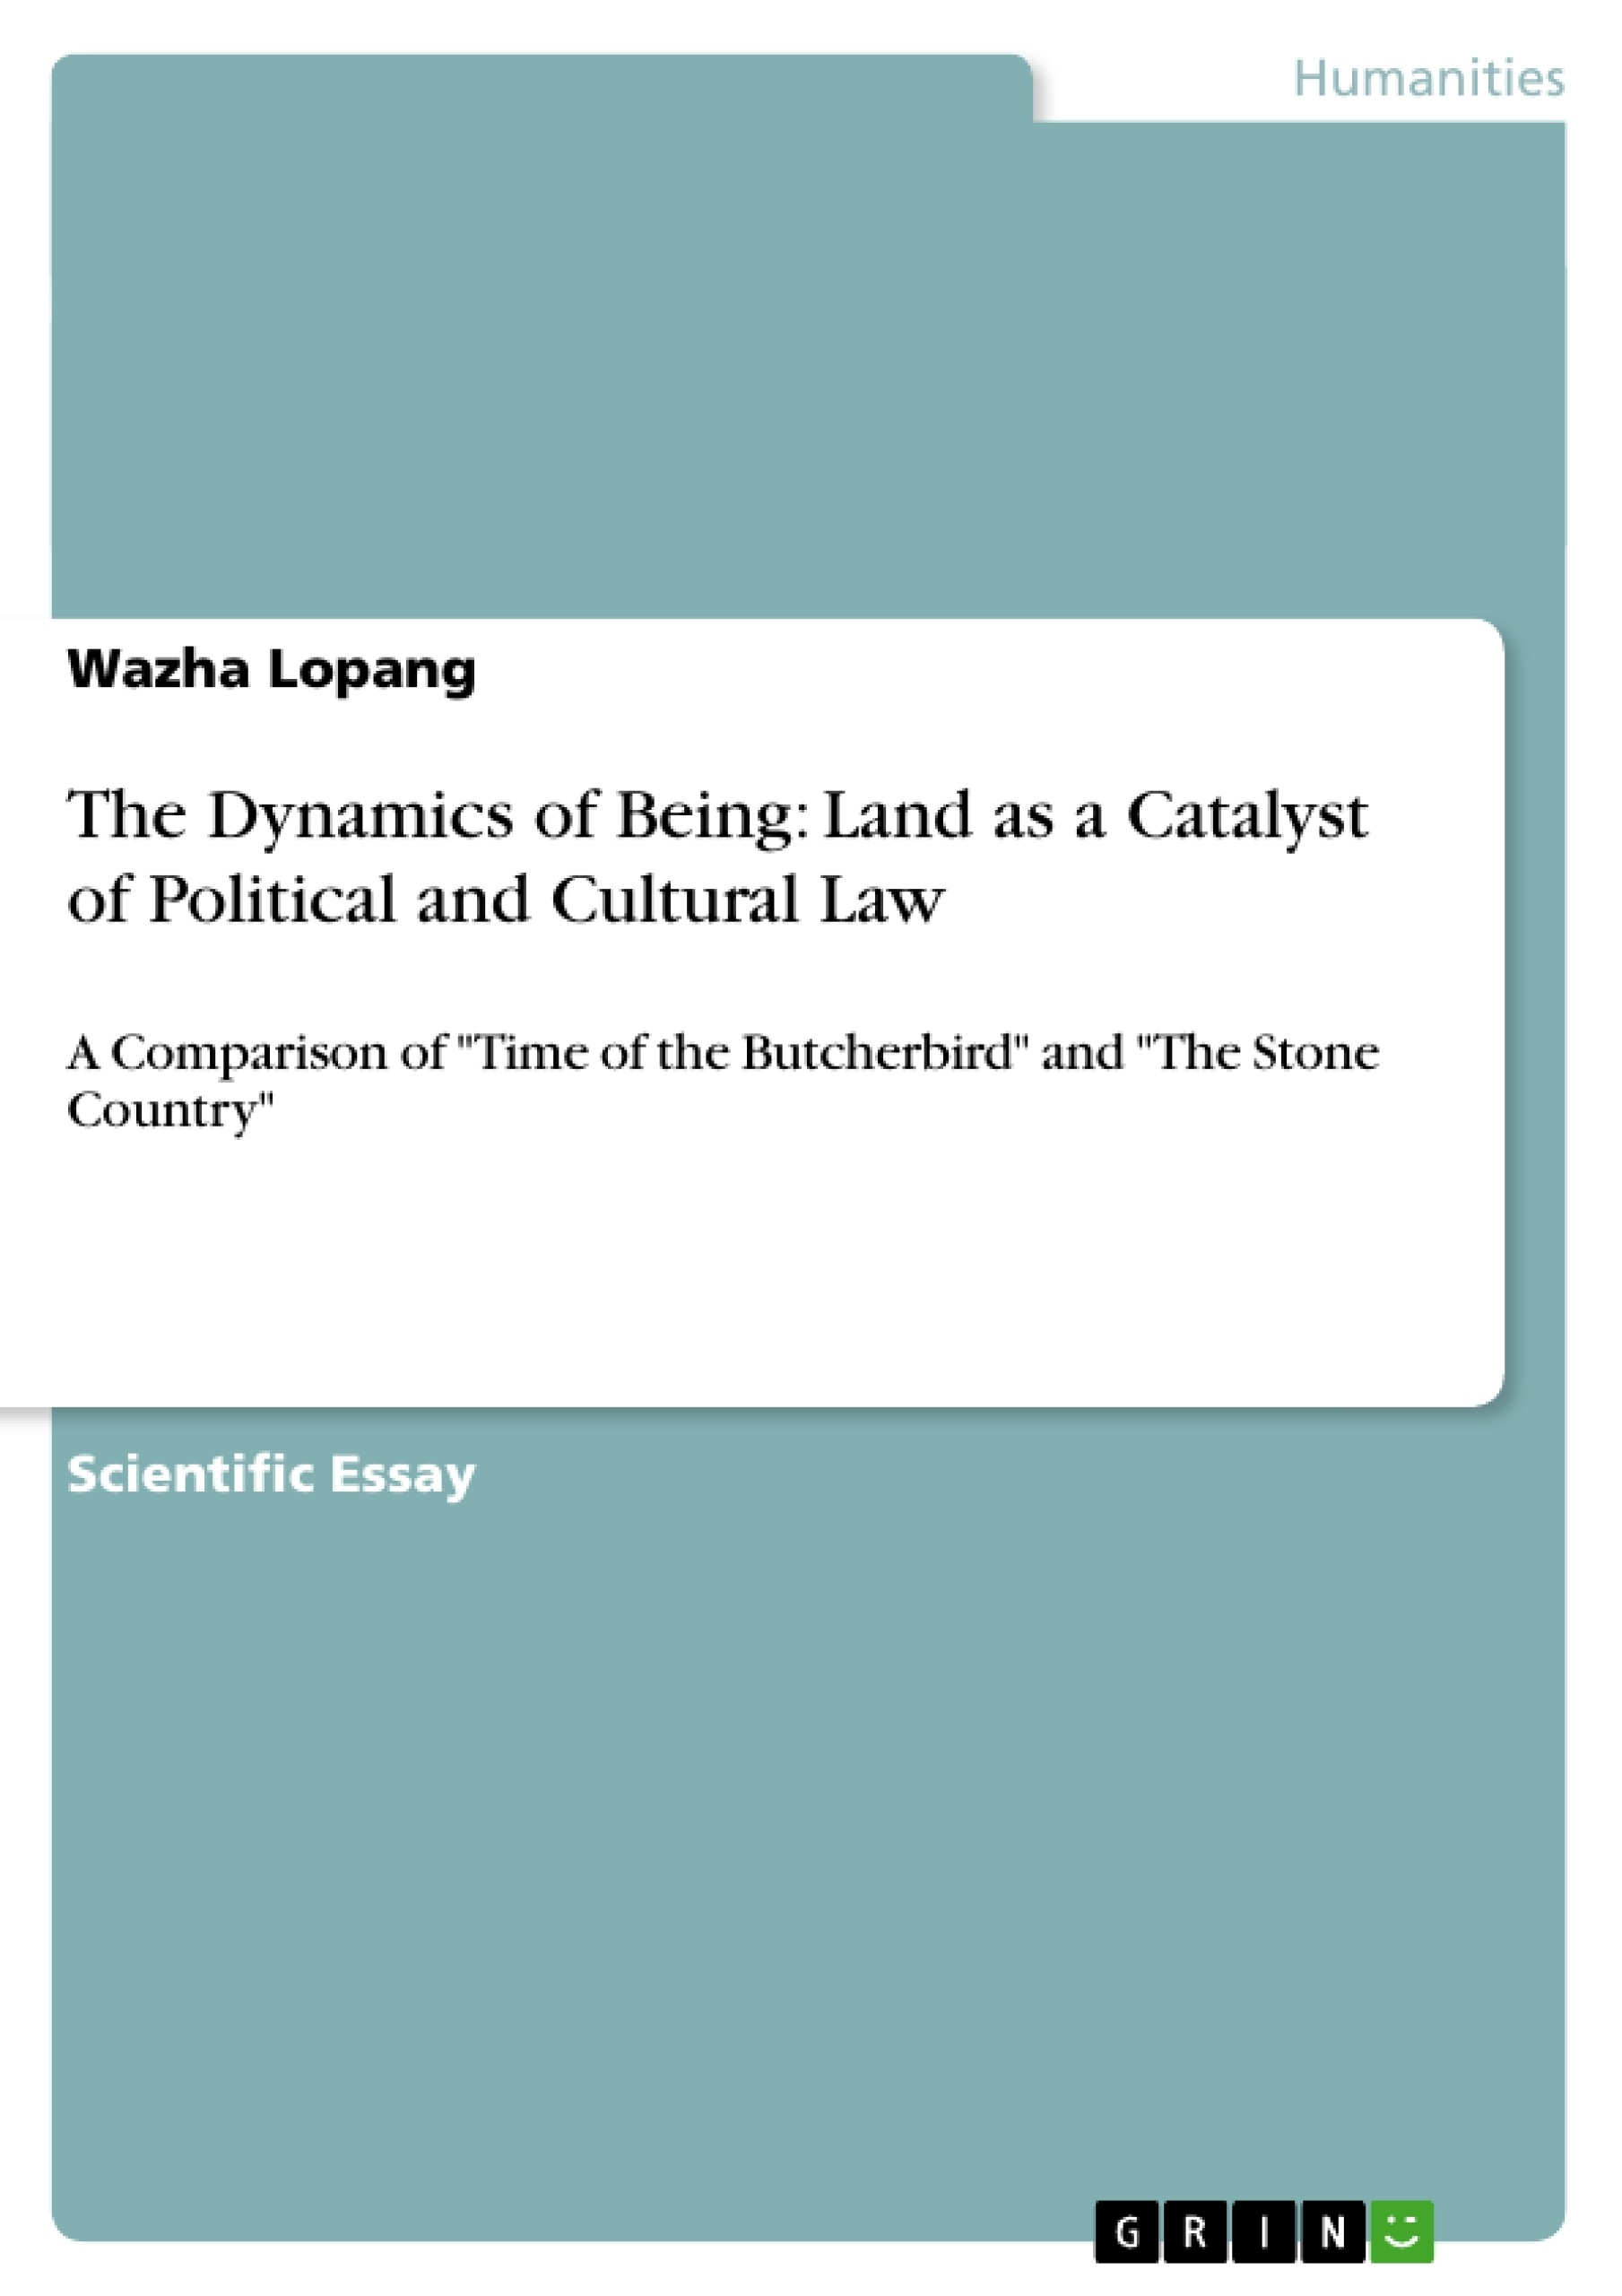 Title: The Dynamics of Being: Land as a Catalyst of Political and Cultural Law